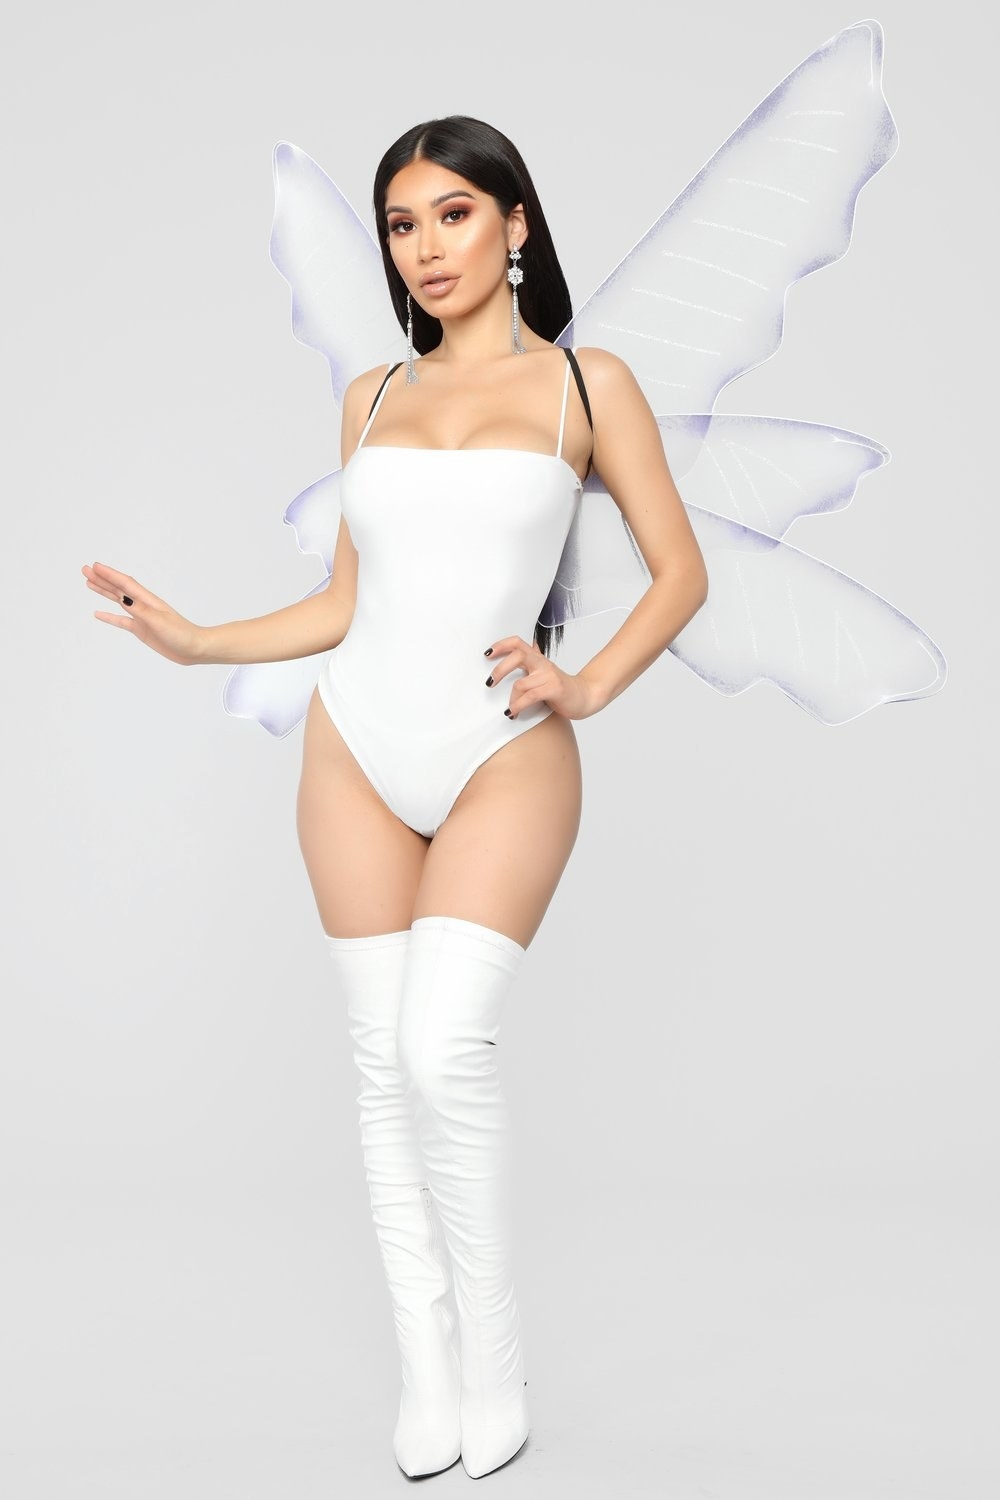 18 Costumes Perfect For Those Looking For Something Sexy